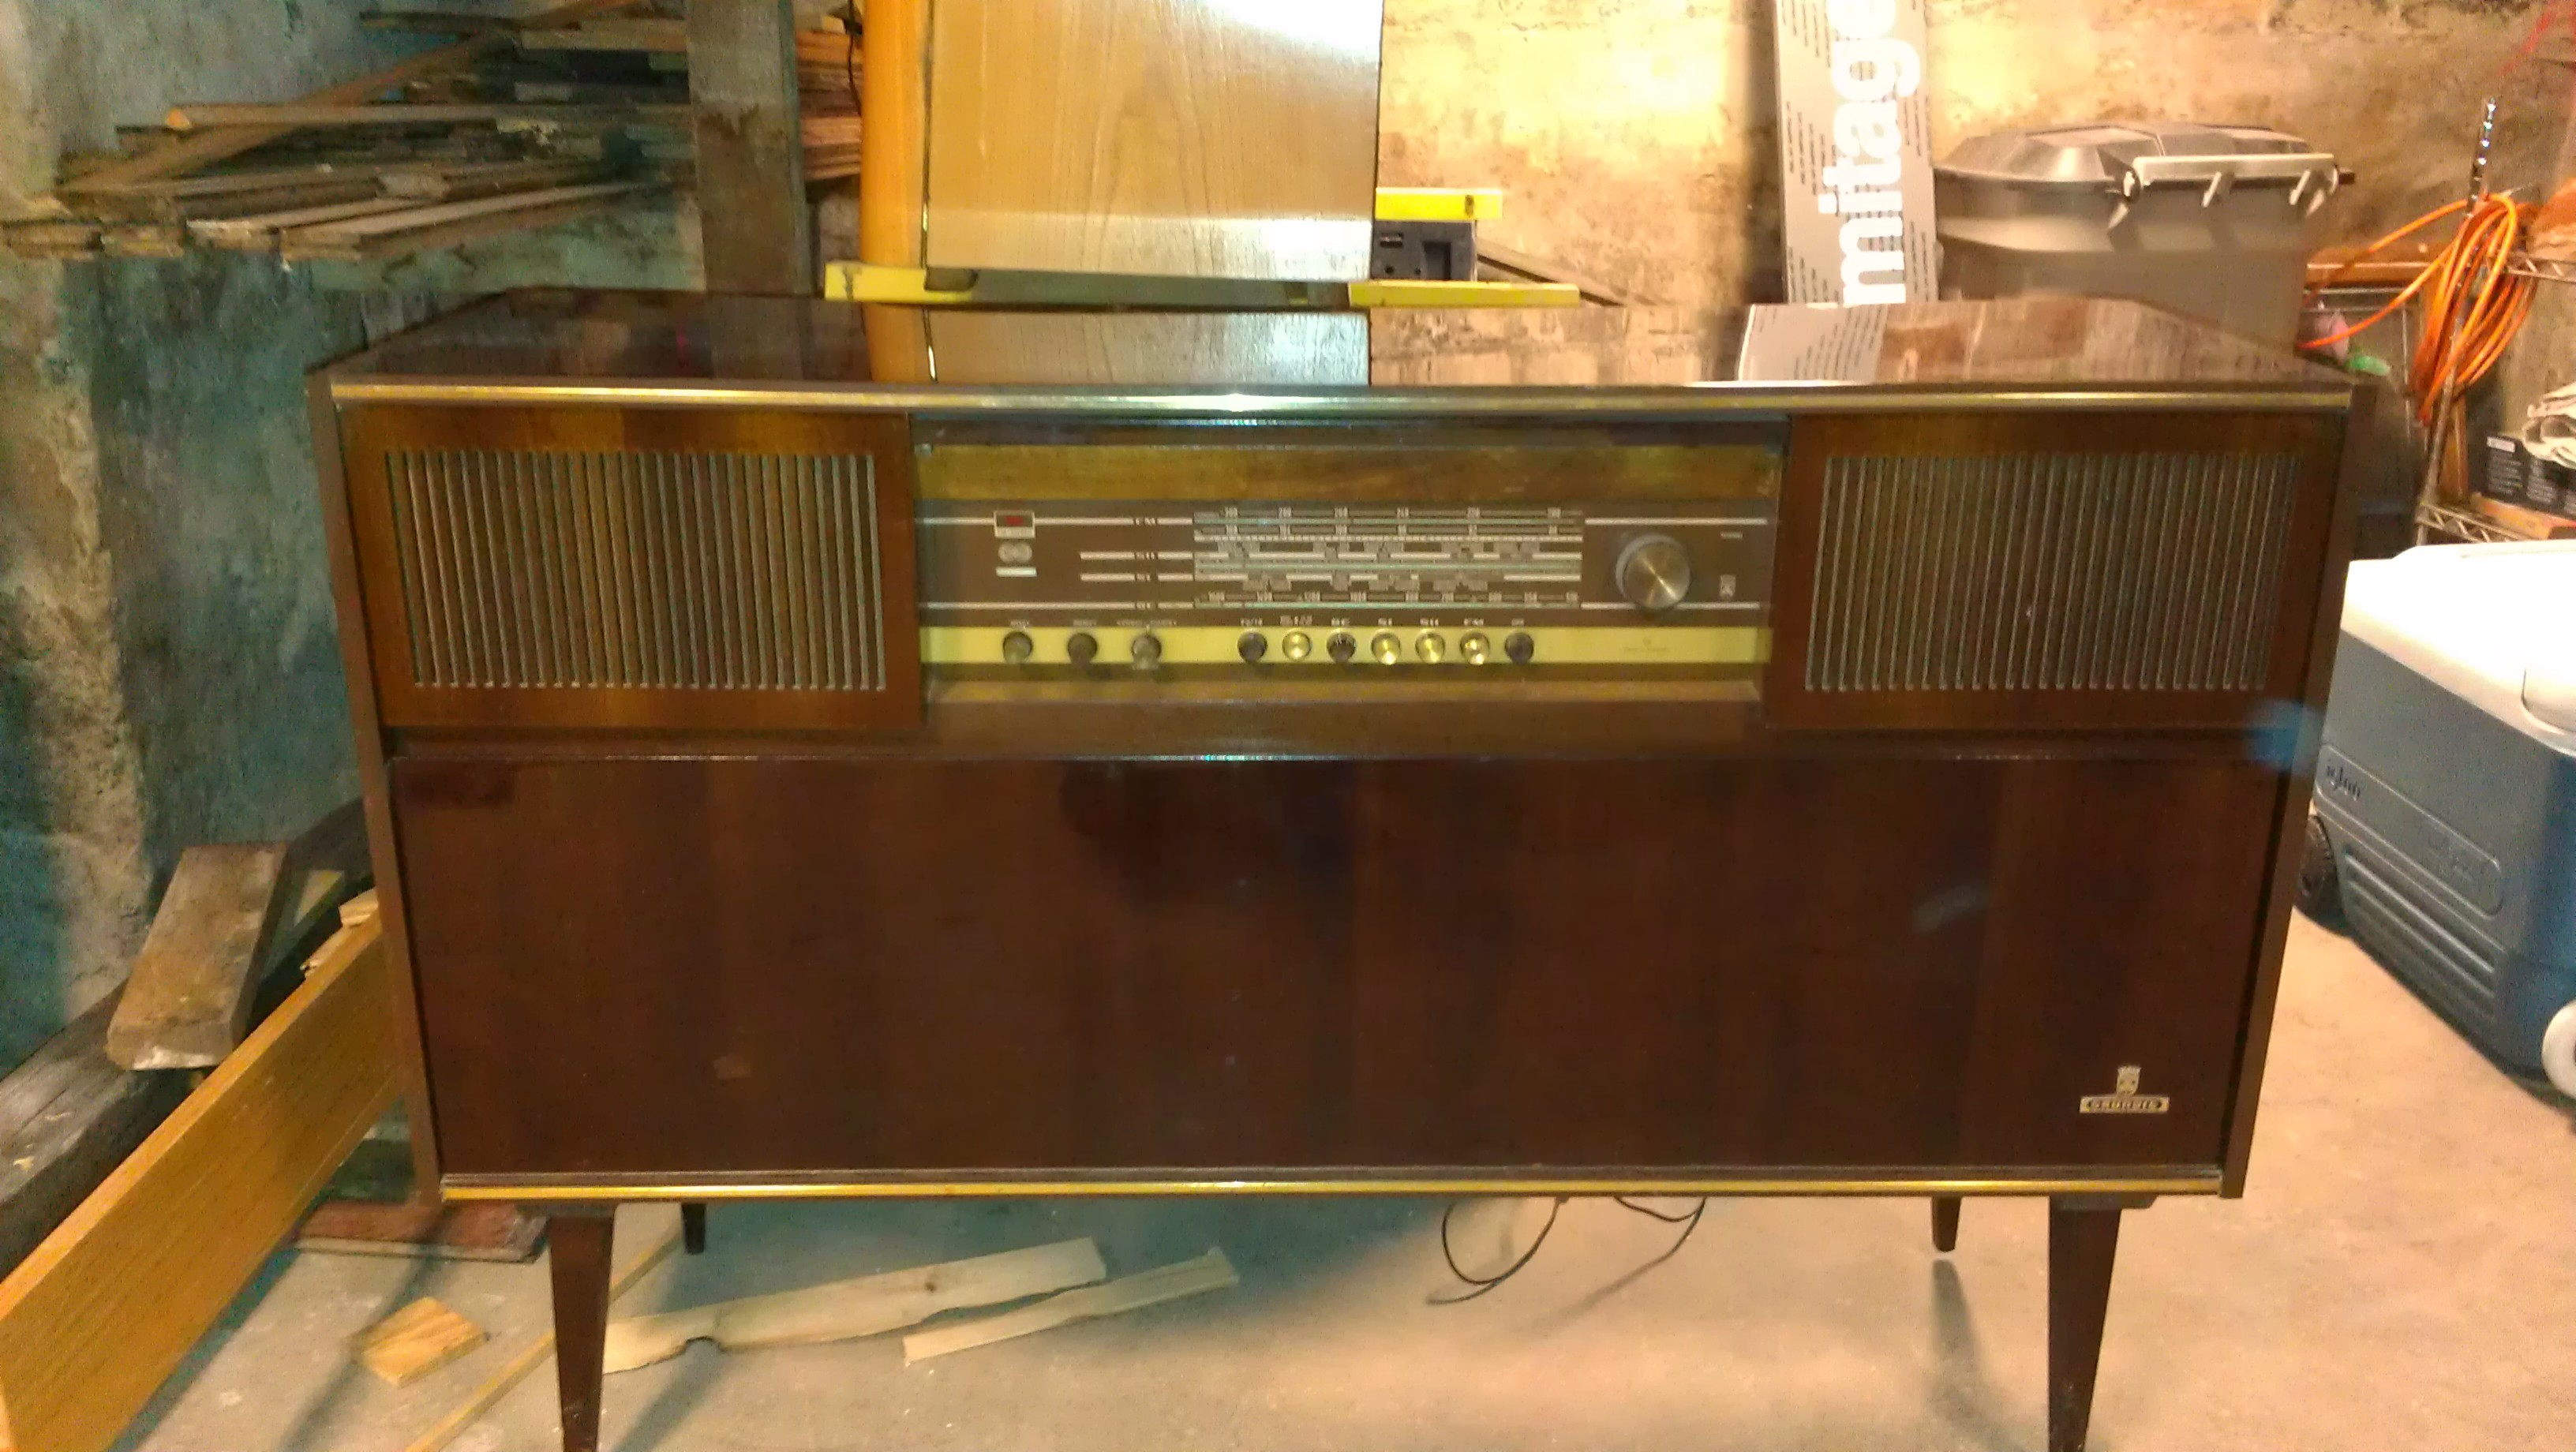 Selling Vintage Grundig Stereo Console | HiFi Clinic